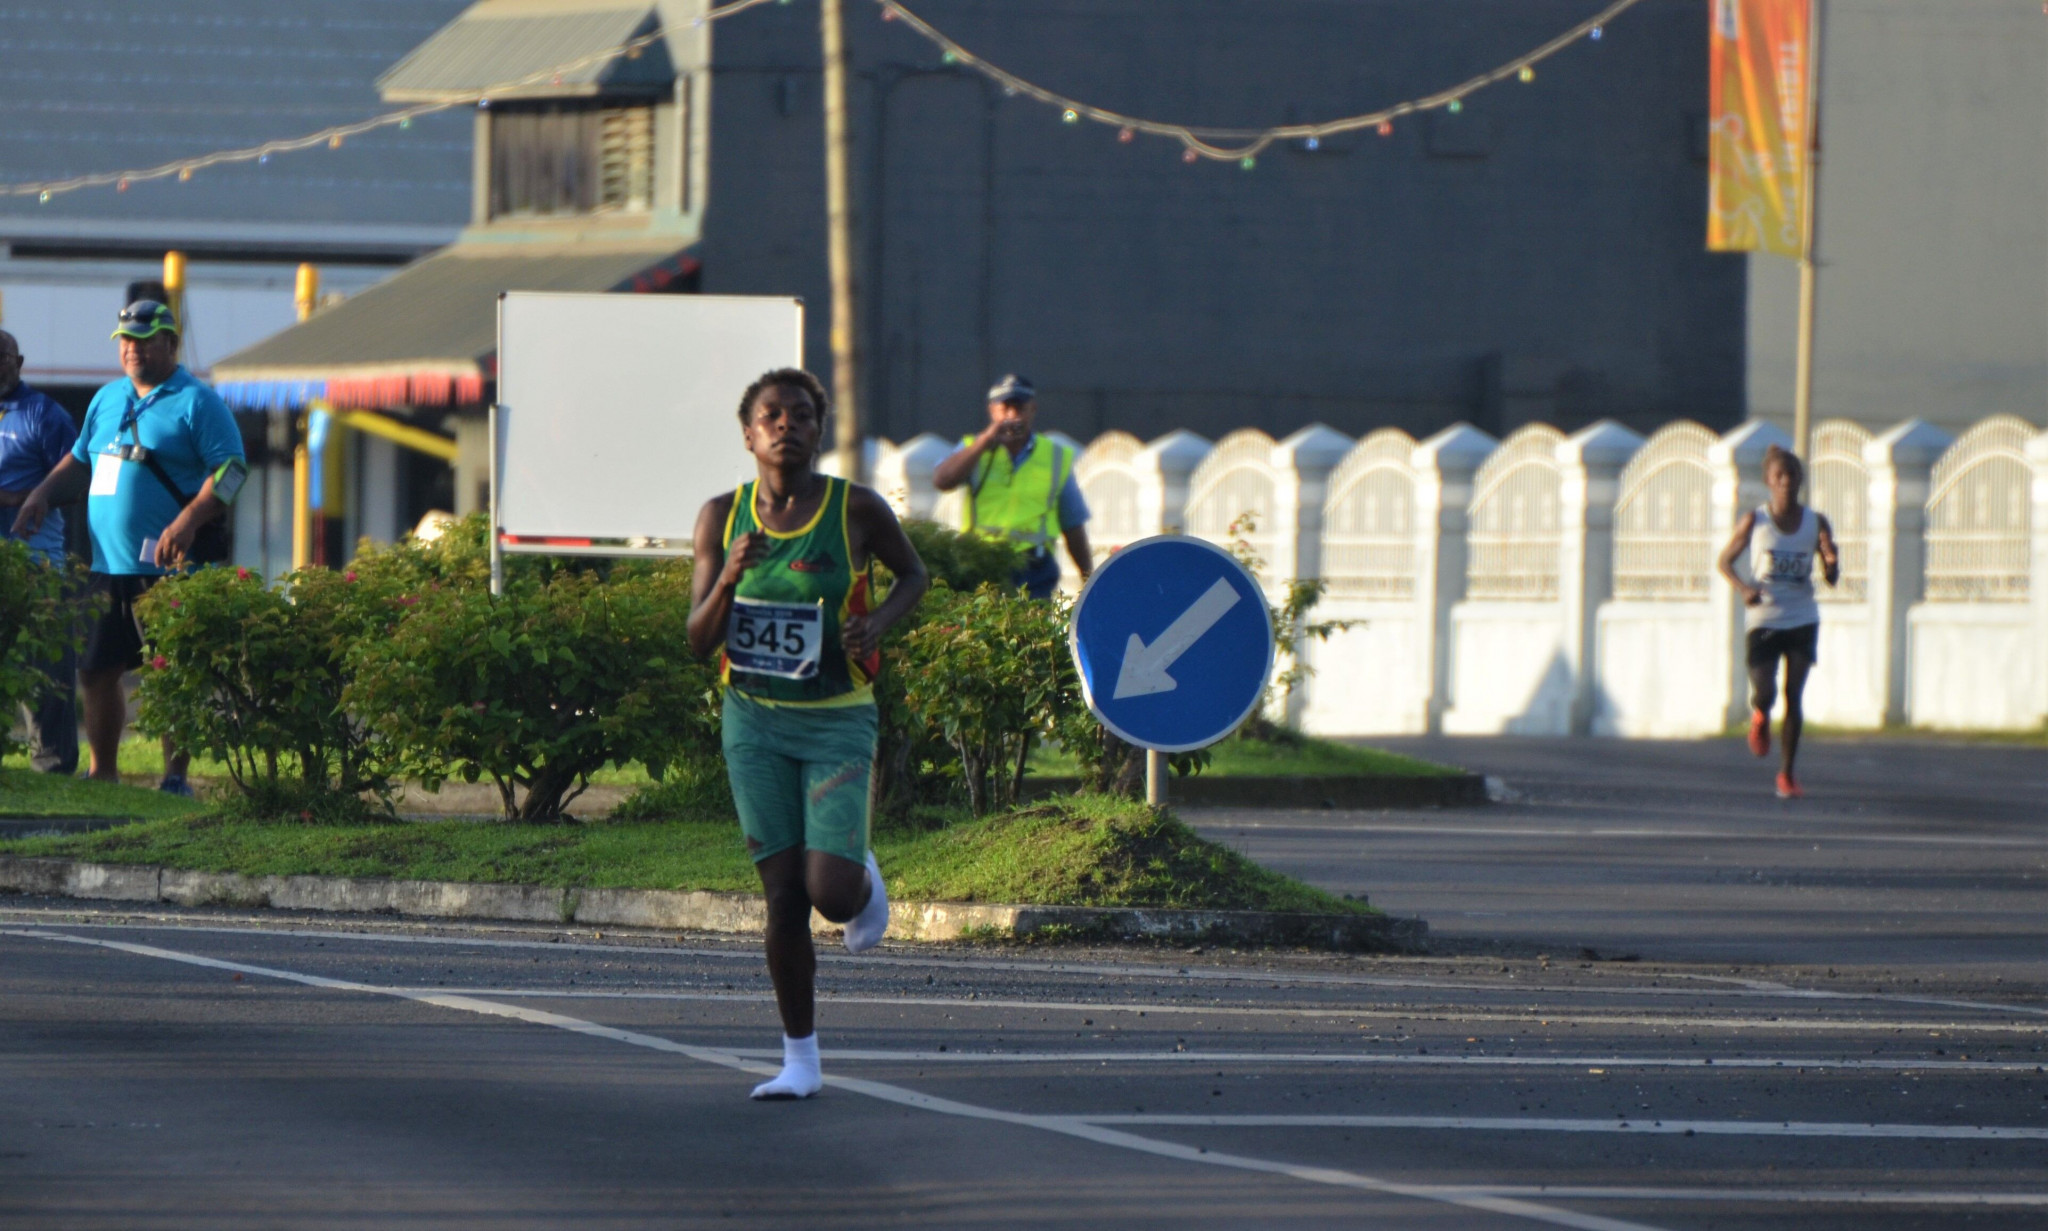 Vanuatu's Margaret Kuras won the women's half marathon at the Samoa 2019 Pacific Games wearing only socks ©Games News Service